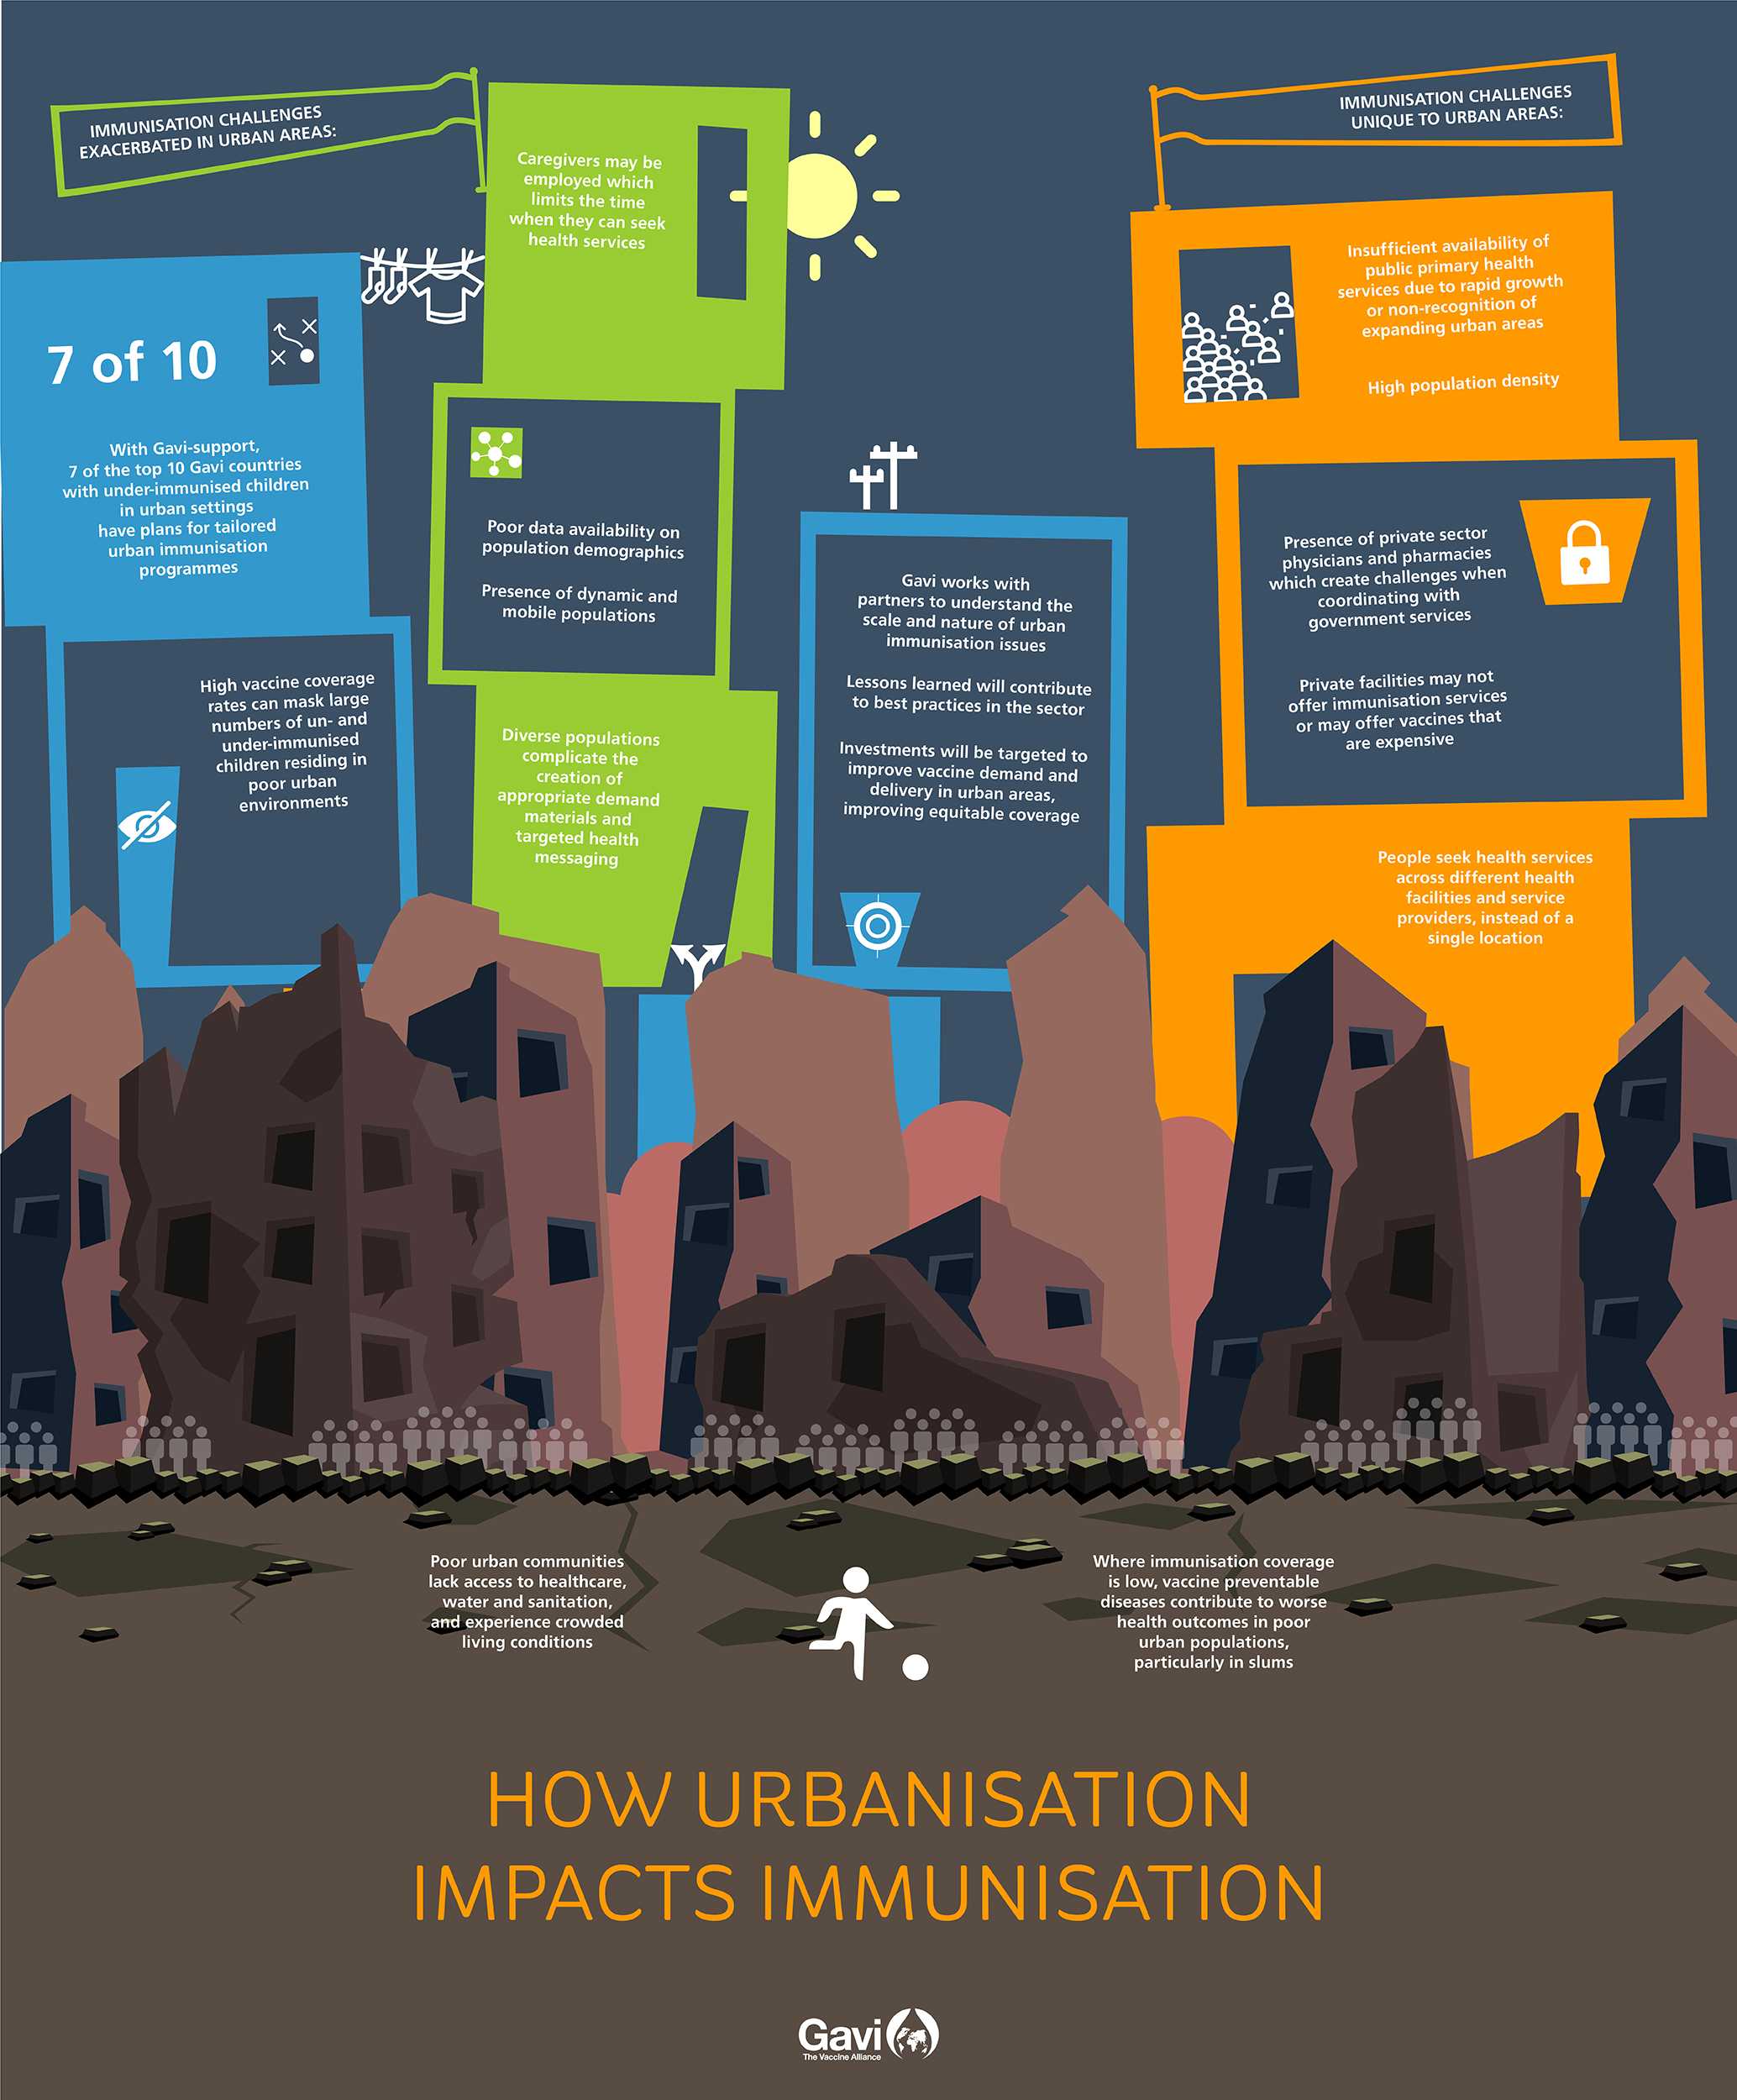 How Urbanisation Impacts Immunisation_low-res.jpg